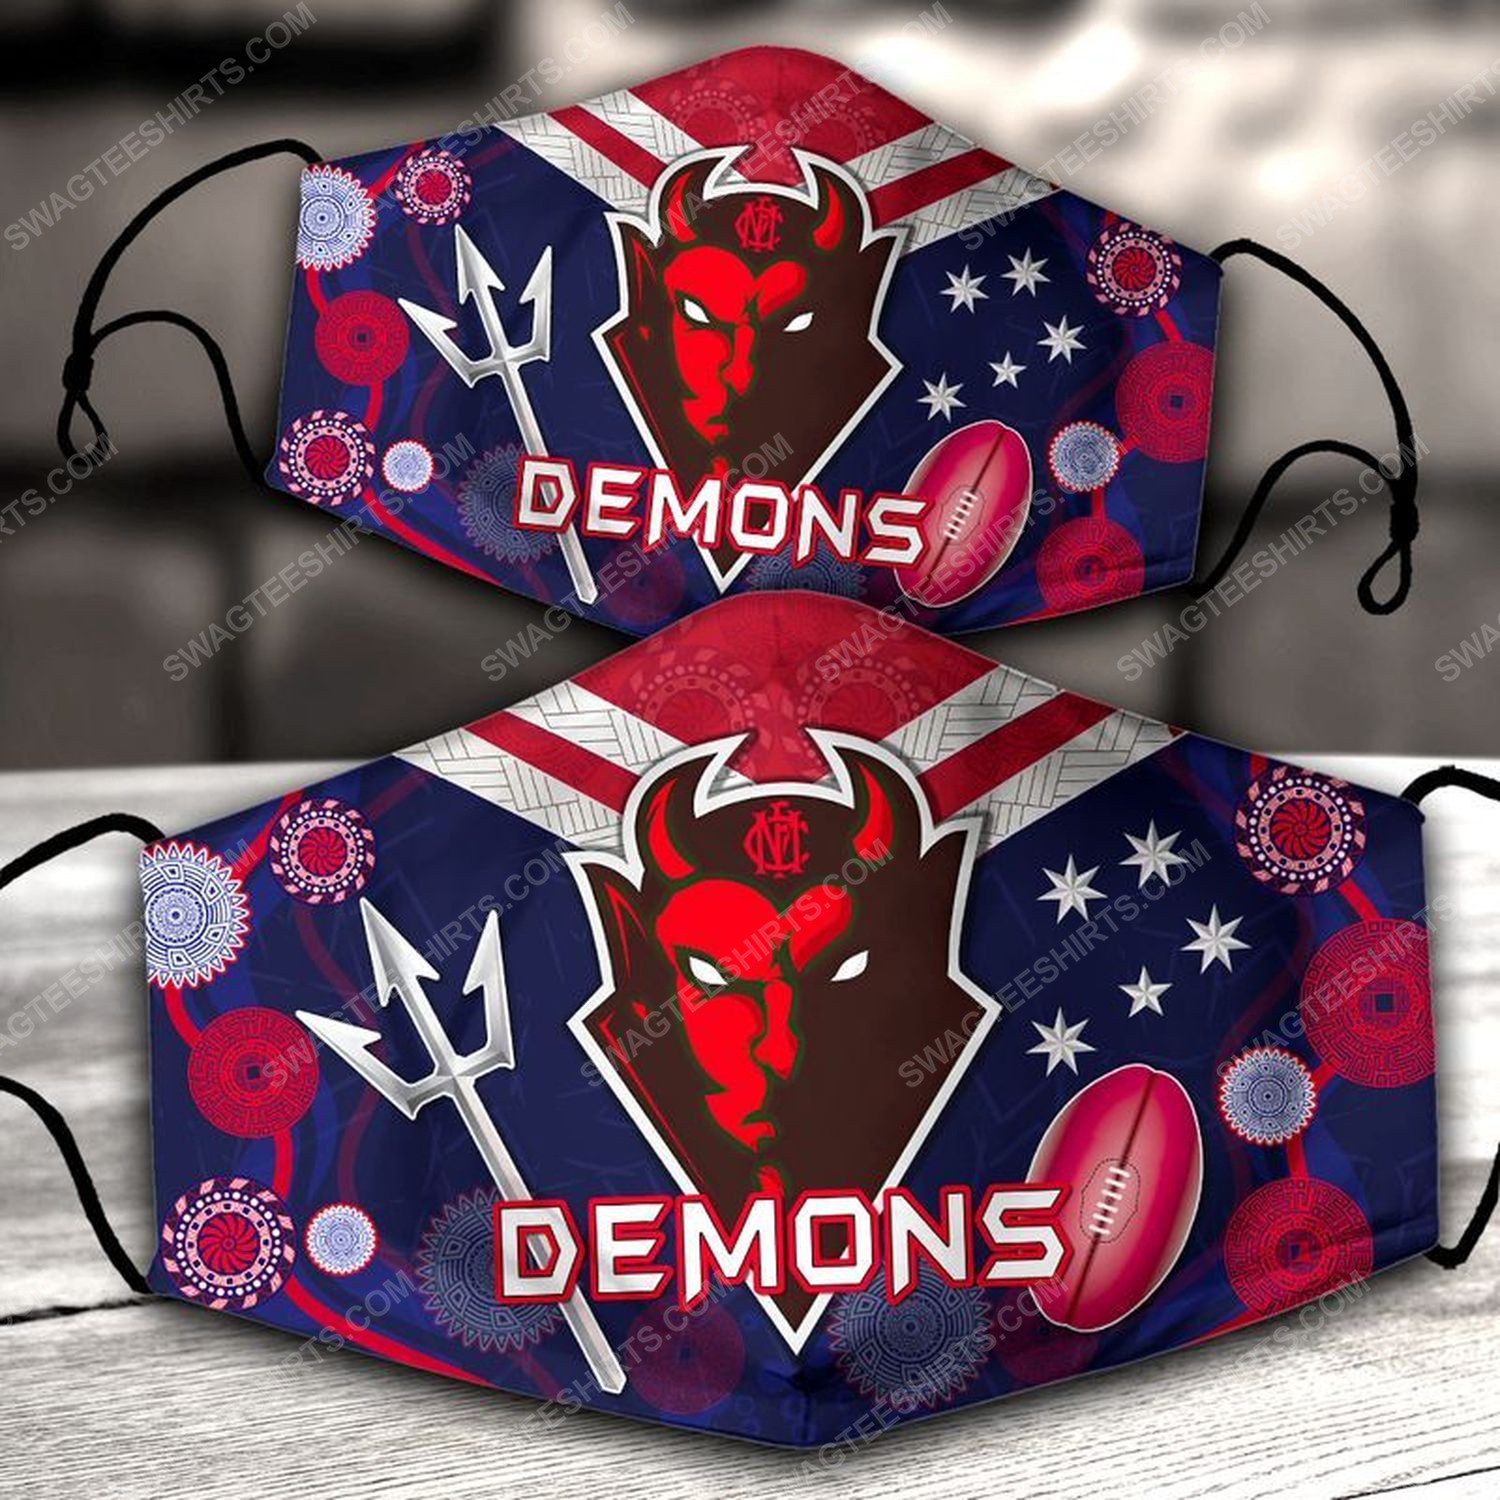 Football club melbourne demons all over print face mask